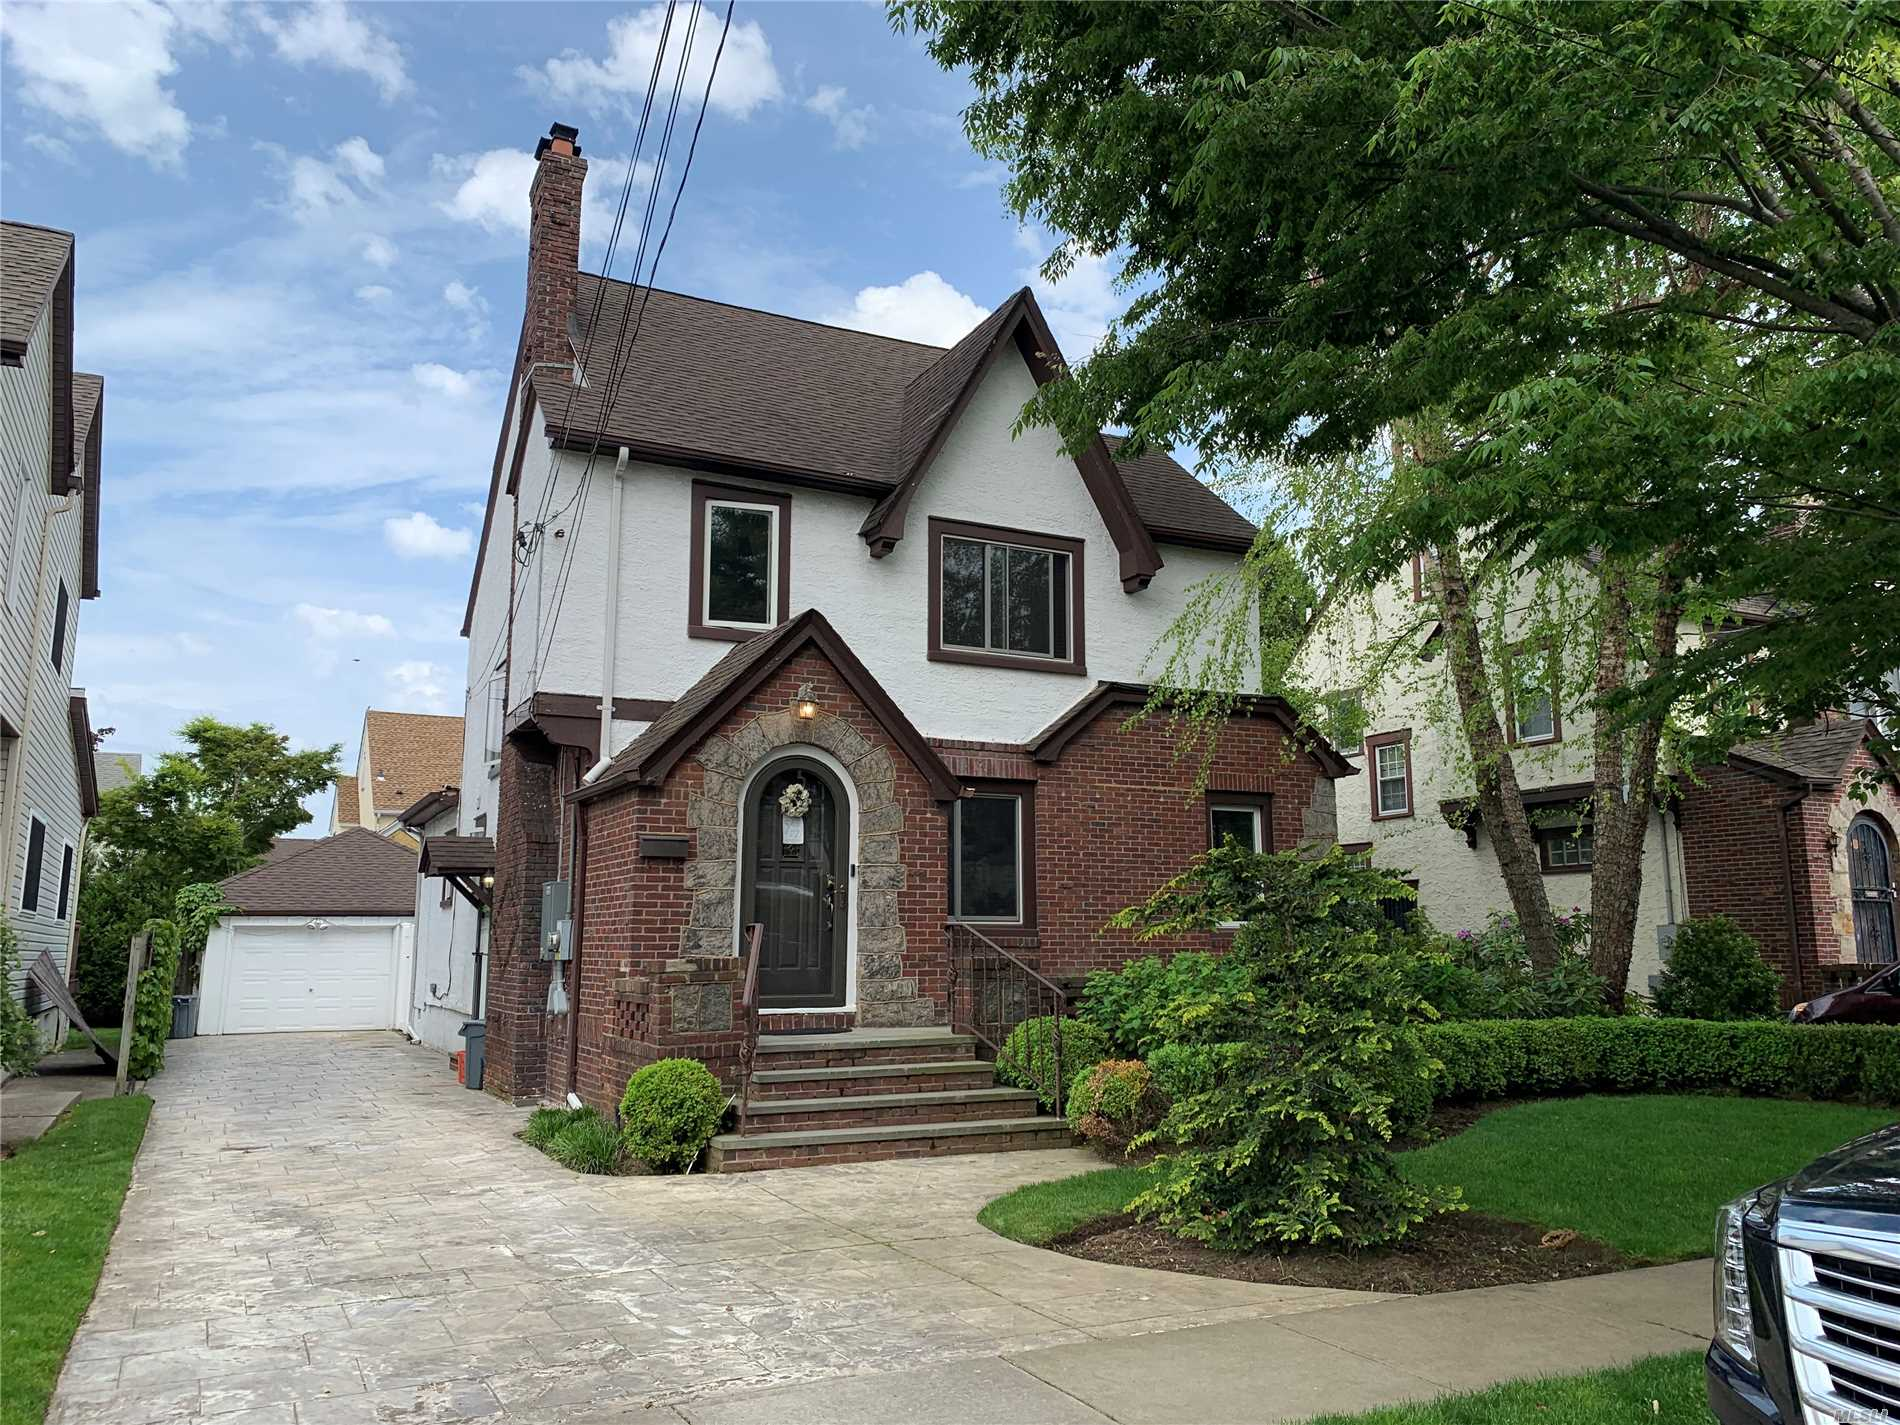 Diamond, 4 Br Tudor With Ig Pool W/ Solar Heat! Radiant Heat Under Hardwood Floors On Entire First Floor, New Wood Kitchen With Hi End Appliances. New Bathrooms, Doors, Boiler, Hw, Fireplace, Windows, Cac., Driveway, Pavers. Insulation Blown Into Walls And Attic. Security System W/ Cameras & Remote Locks. Motorized Awning In Rear, New Whole Home Gas Generator. Igs., California Closets, Window Treatments, And Much More